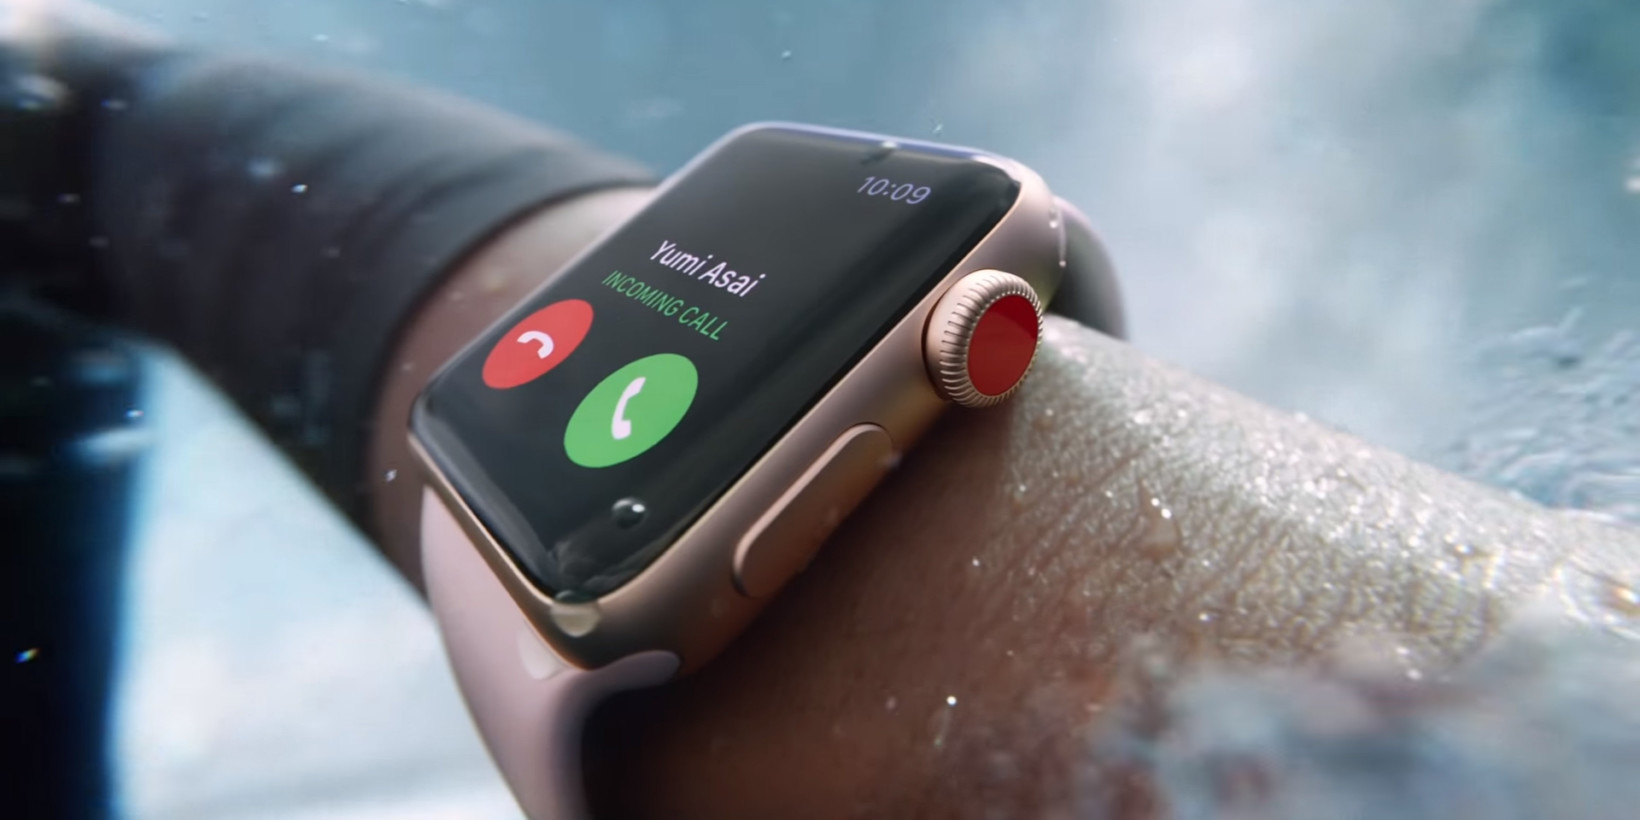 Apple Watch Series 3 will have cellular connectivity